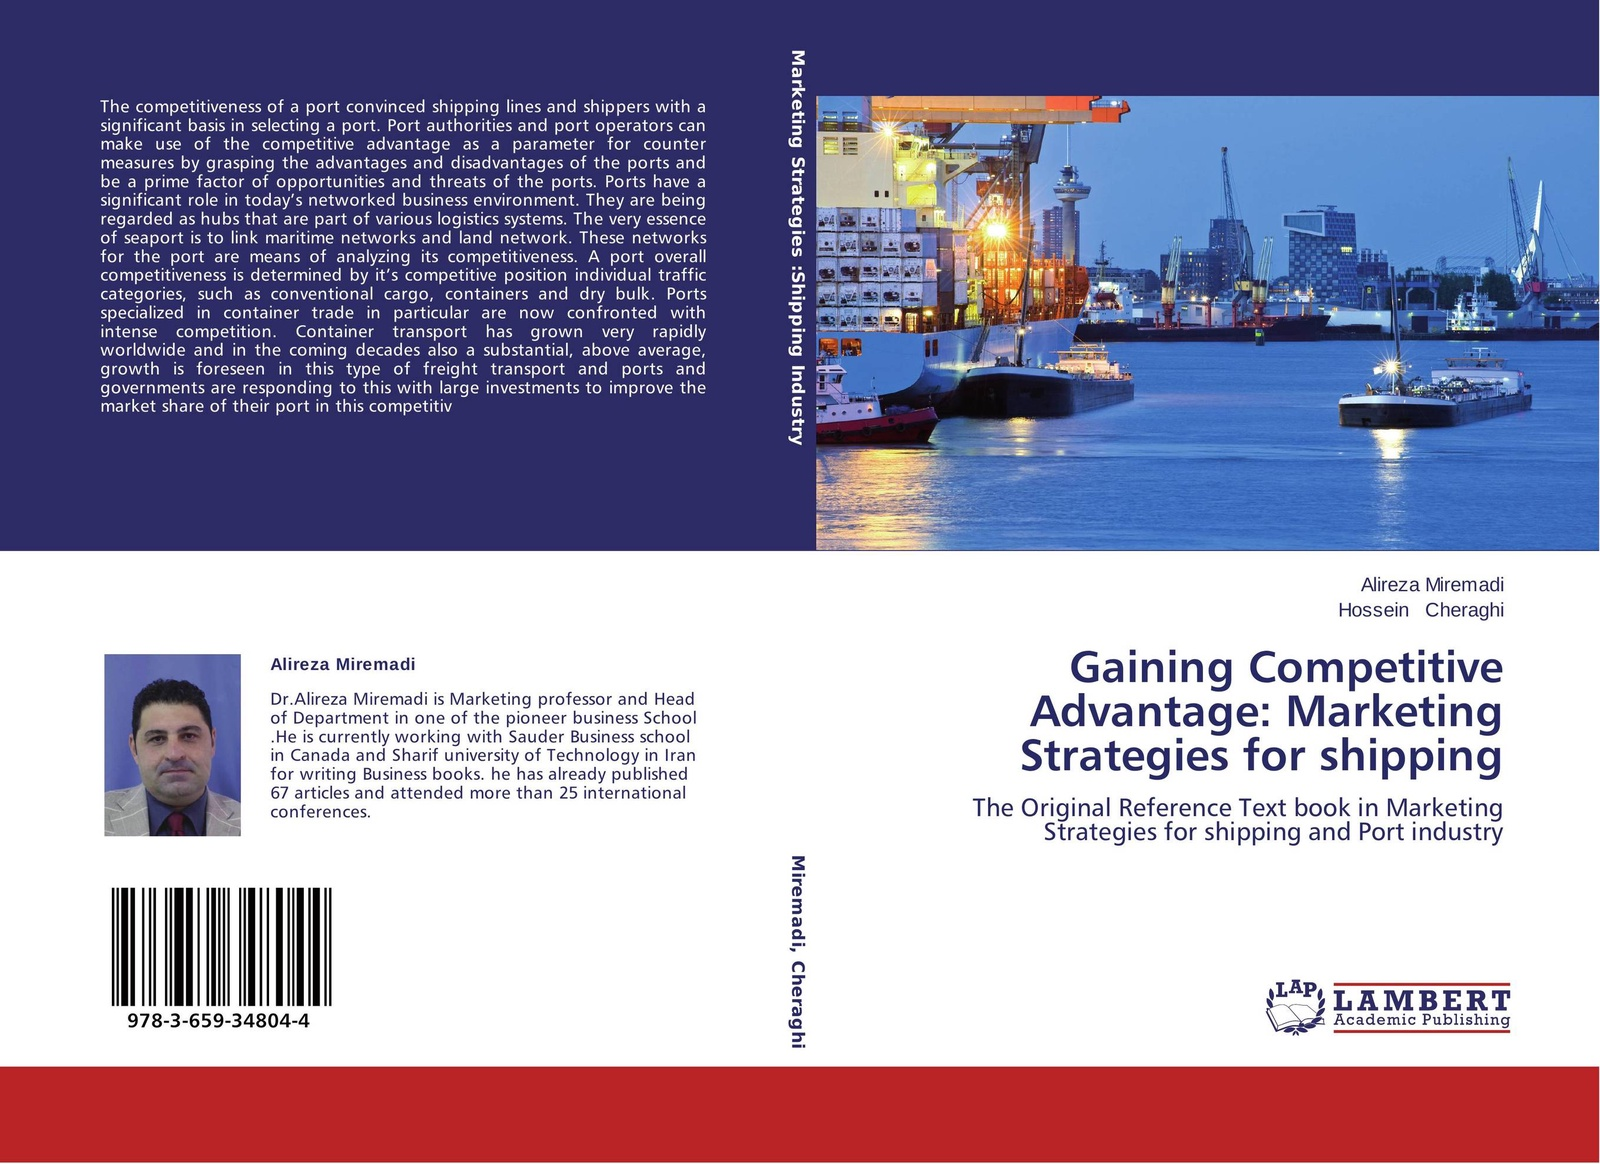 Alireza Miremadi and Hossein Cheraghi Gaining Competitive Advantage: Marketing Strategies for shipping цена